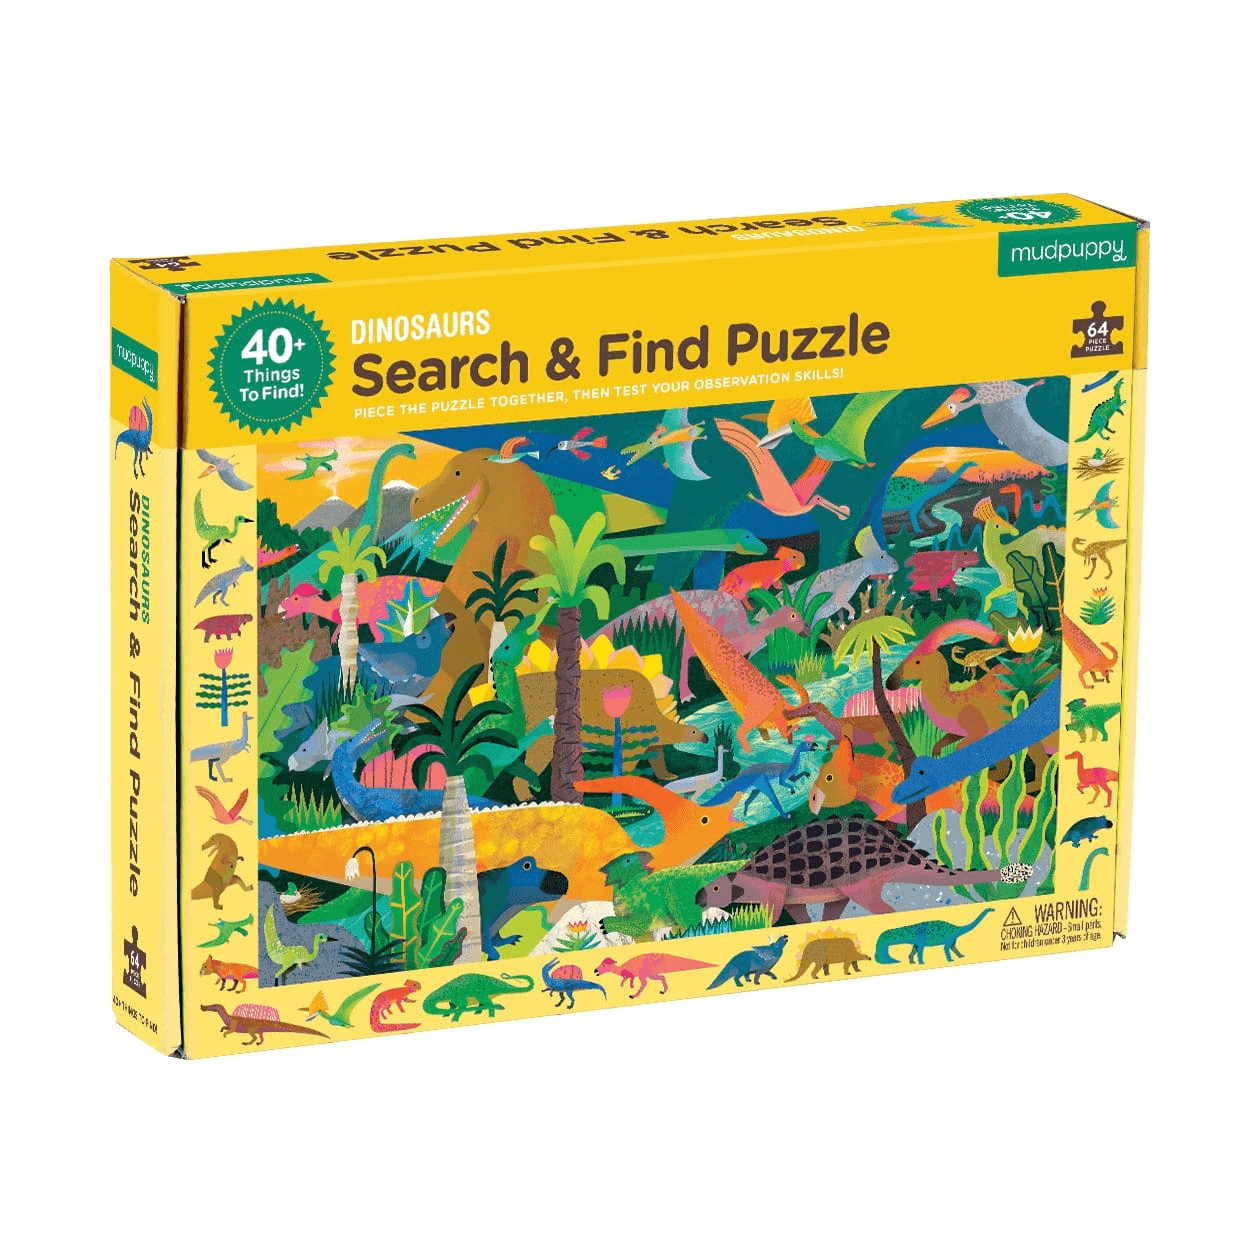 Dinosaurs Search & Find Puzzle Search & Find Puzzles Mudpuppy